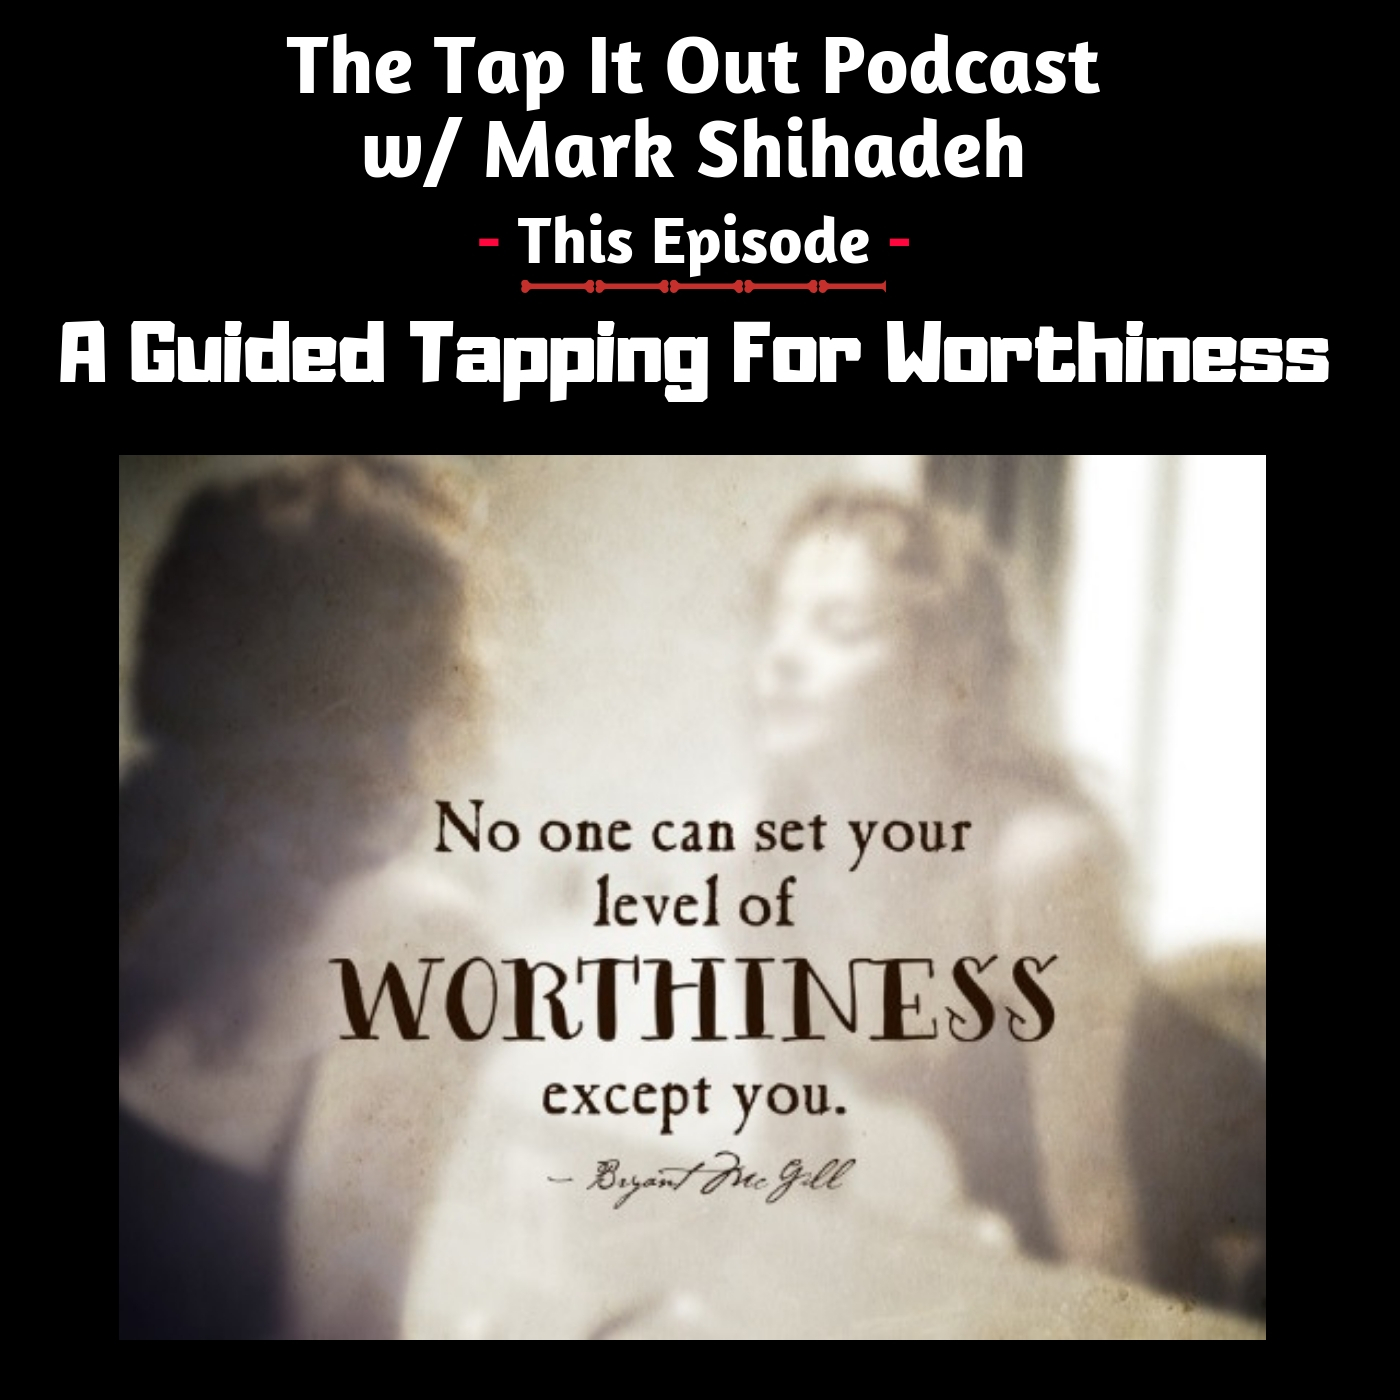 Ep 9: A Guided Tapping for Worthiness